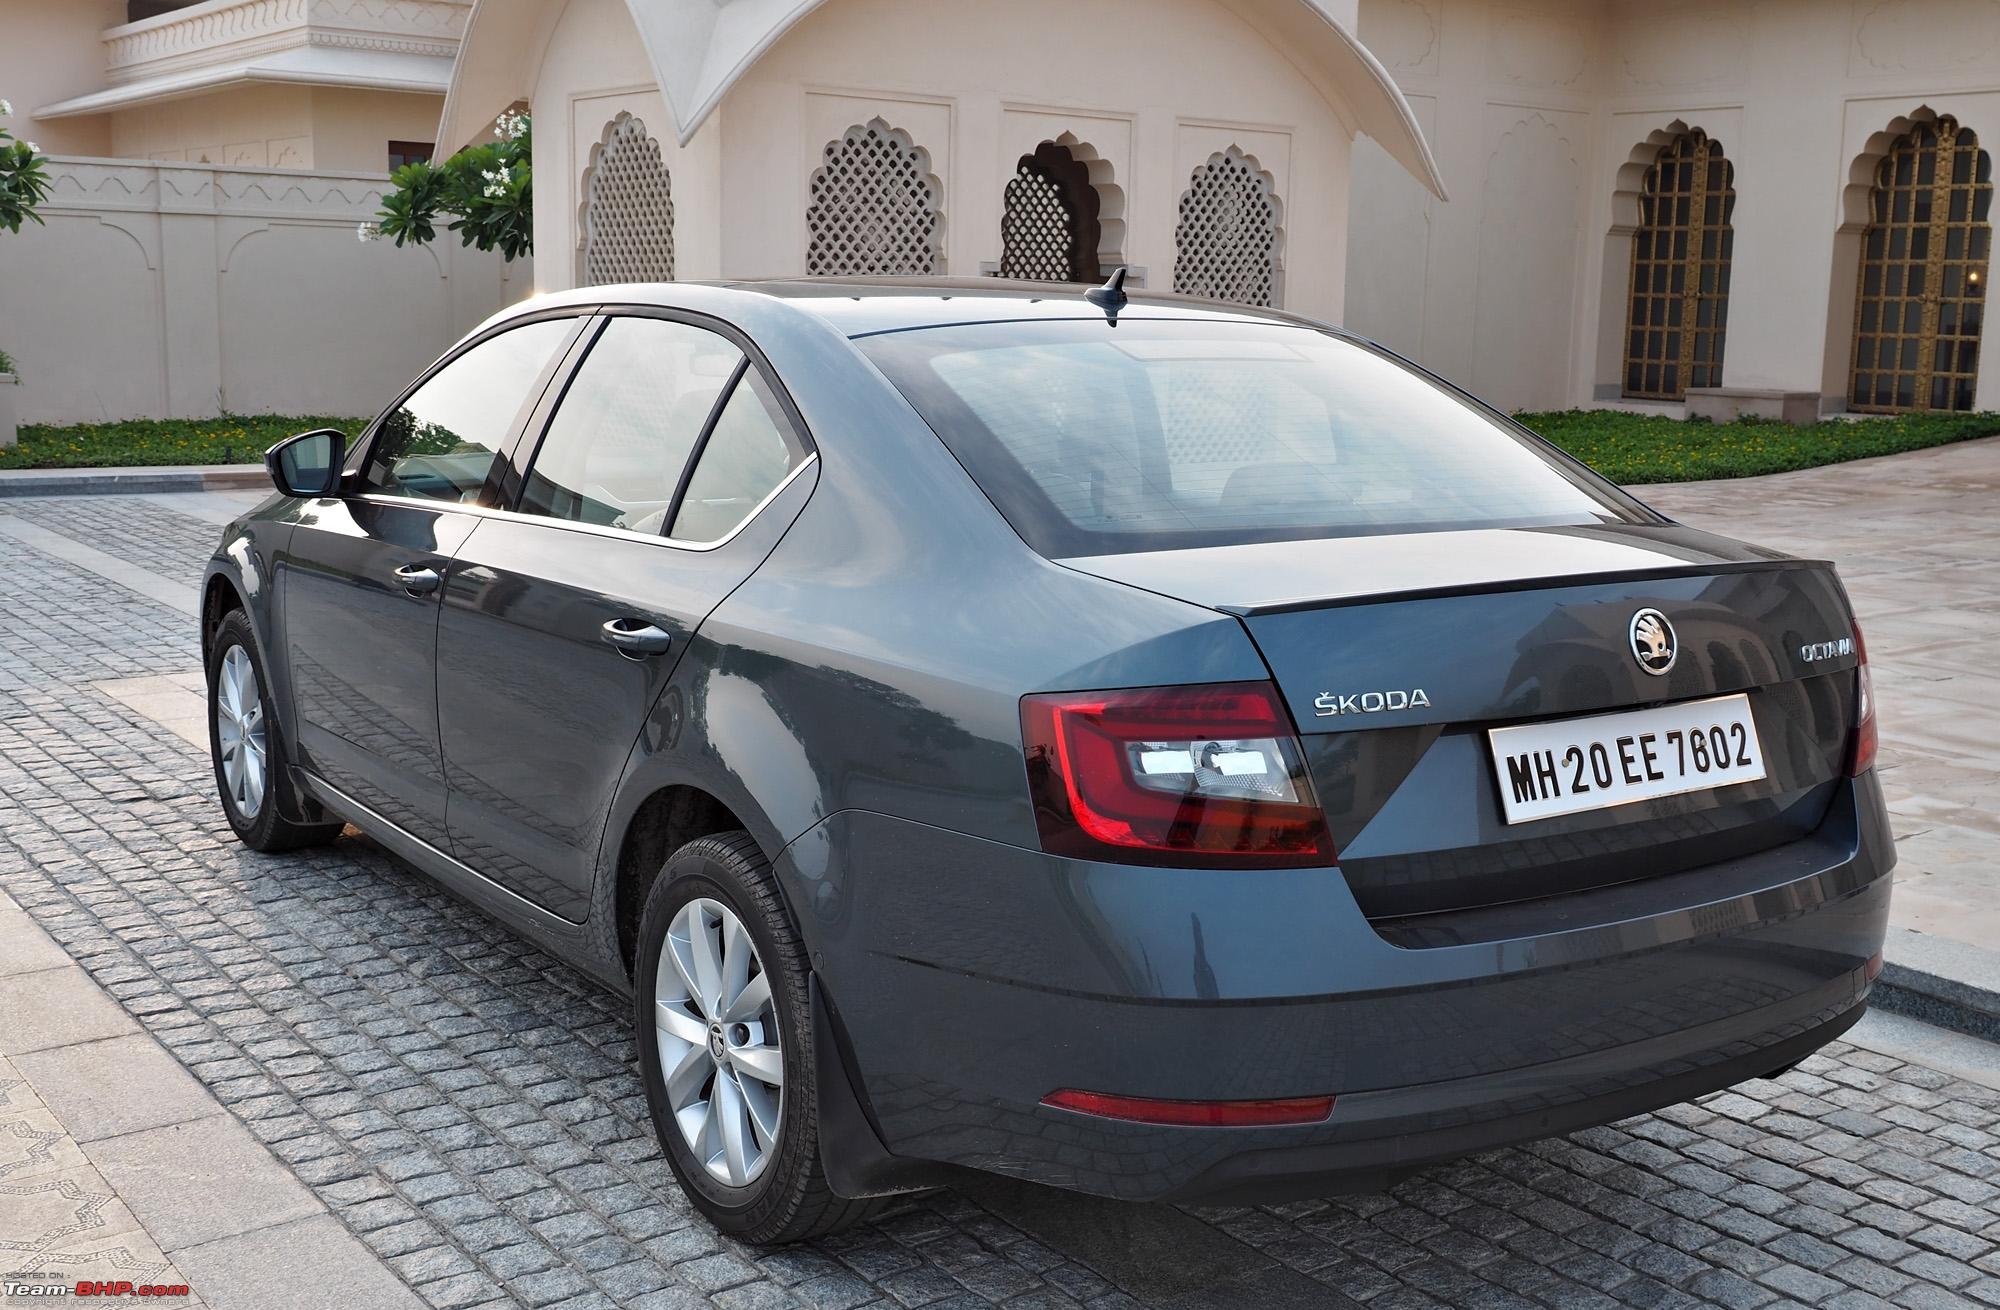 Skoda drives in Octavia Corporate Edition at Rs 15.49 lakh